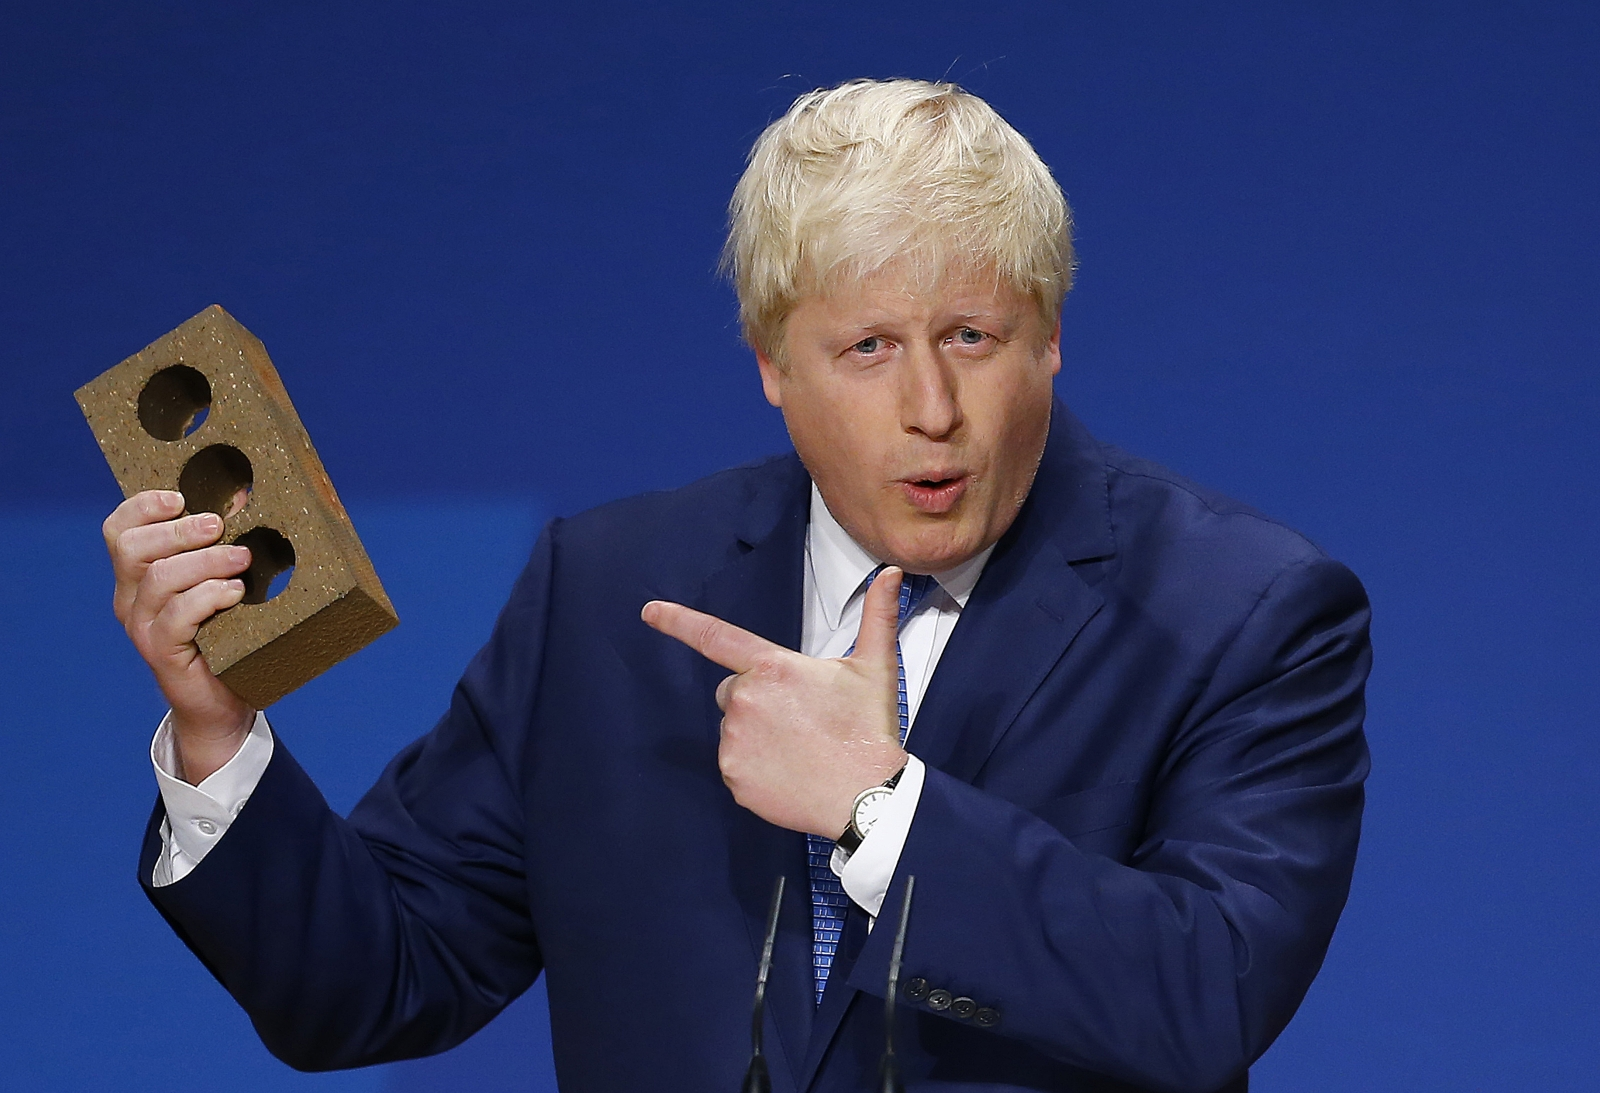 London Mayor Boris Johnson holds a brick as he speaks at the Conservative Party Conference in Birmingham, central England, September 30, 2014